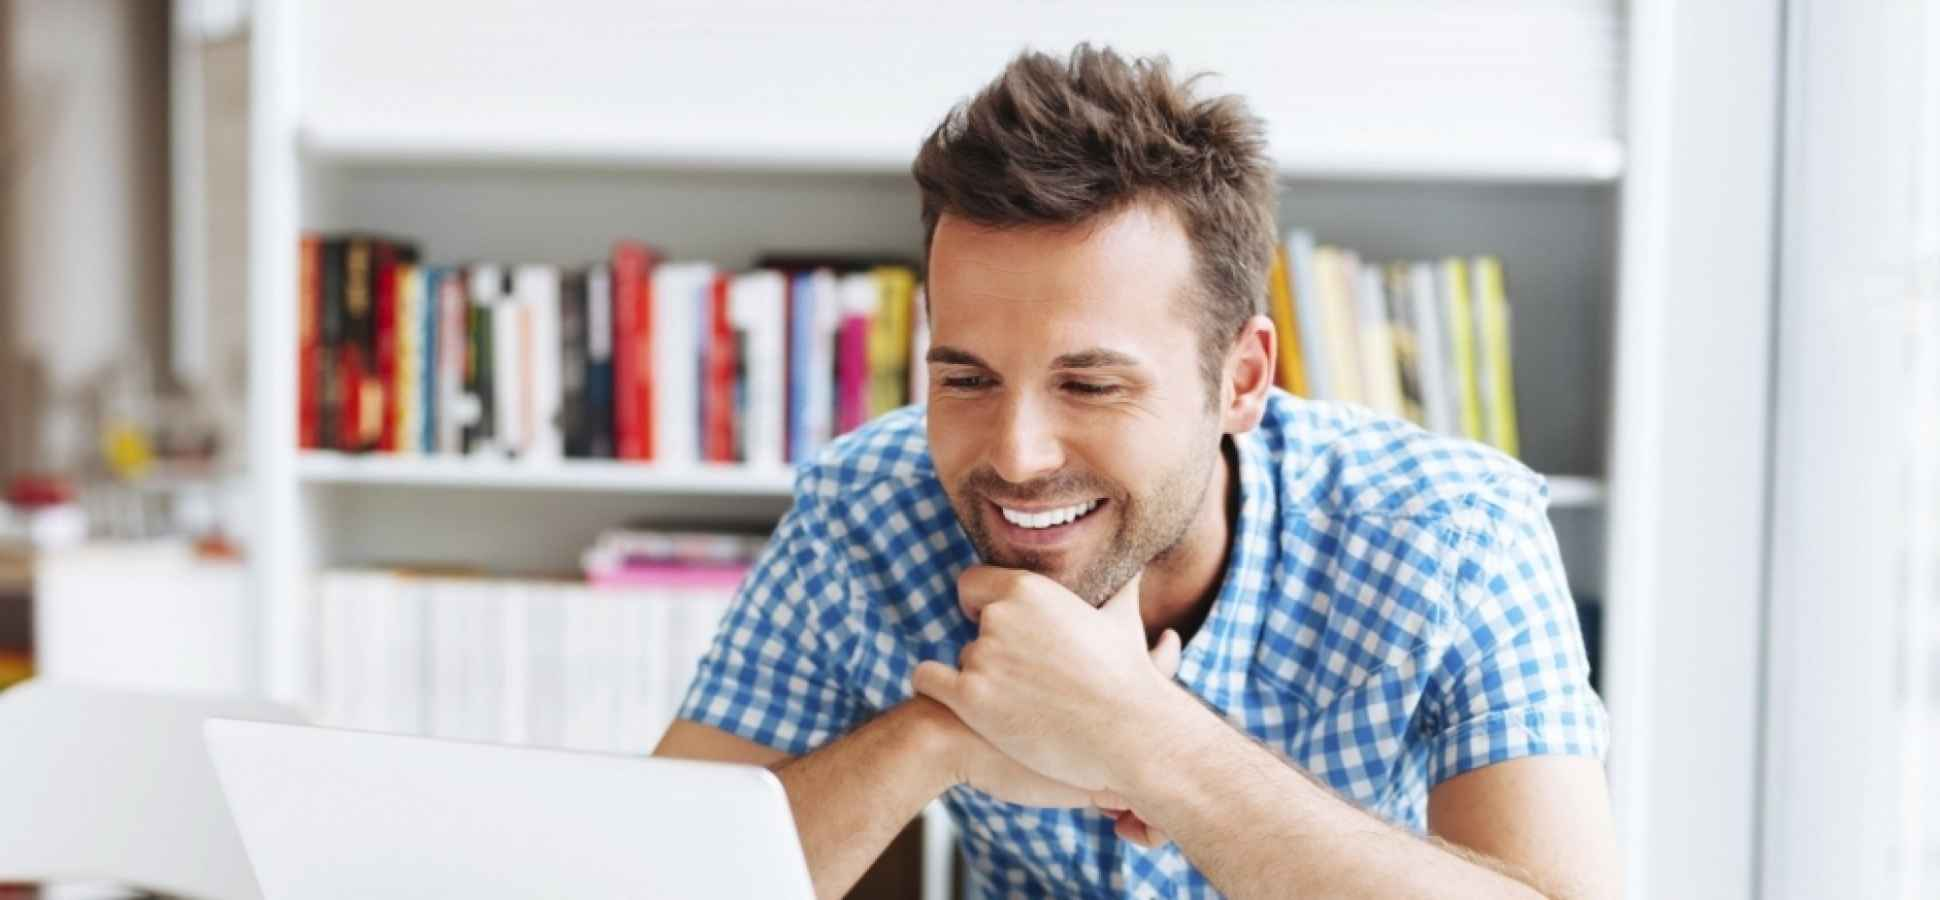 5 Practical Habits That Will Make You Happier at Work